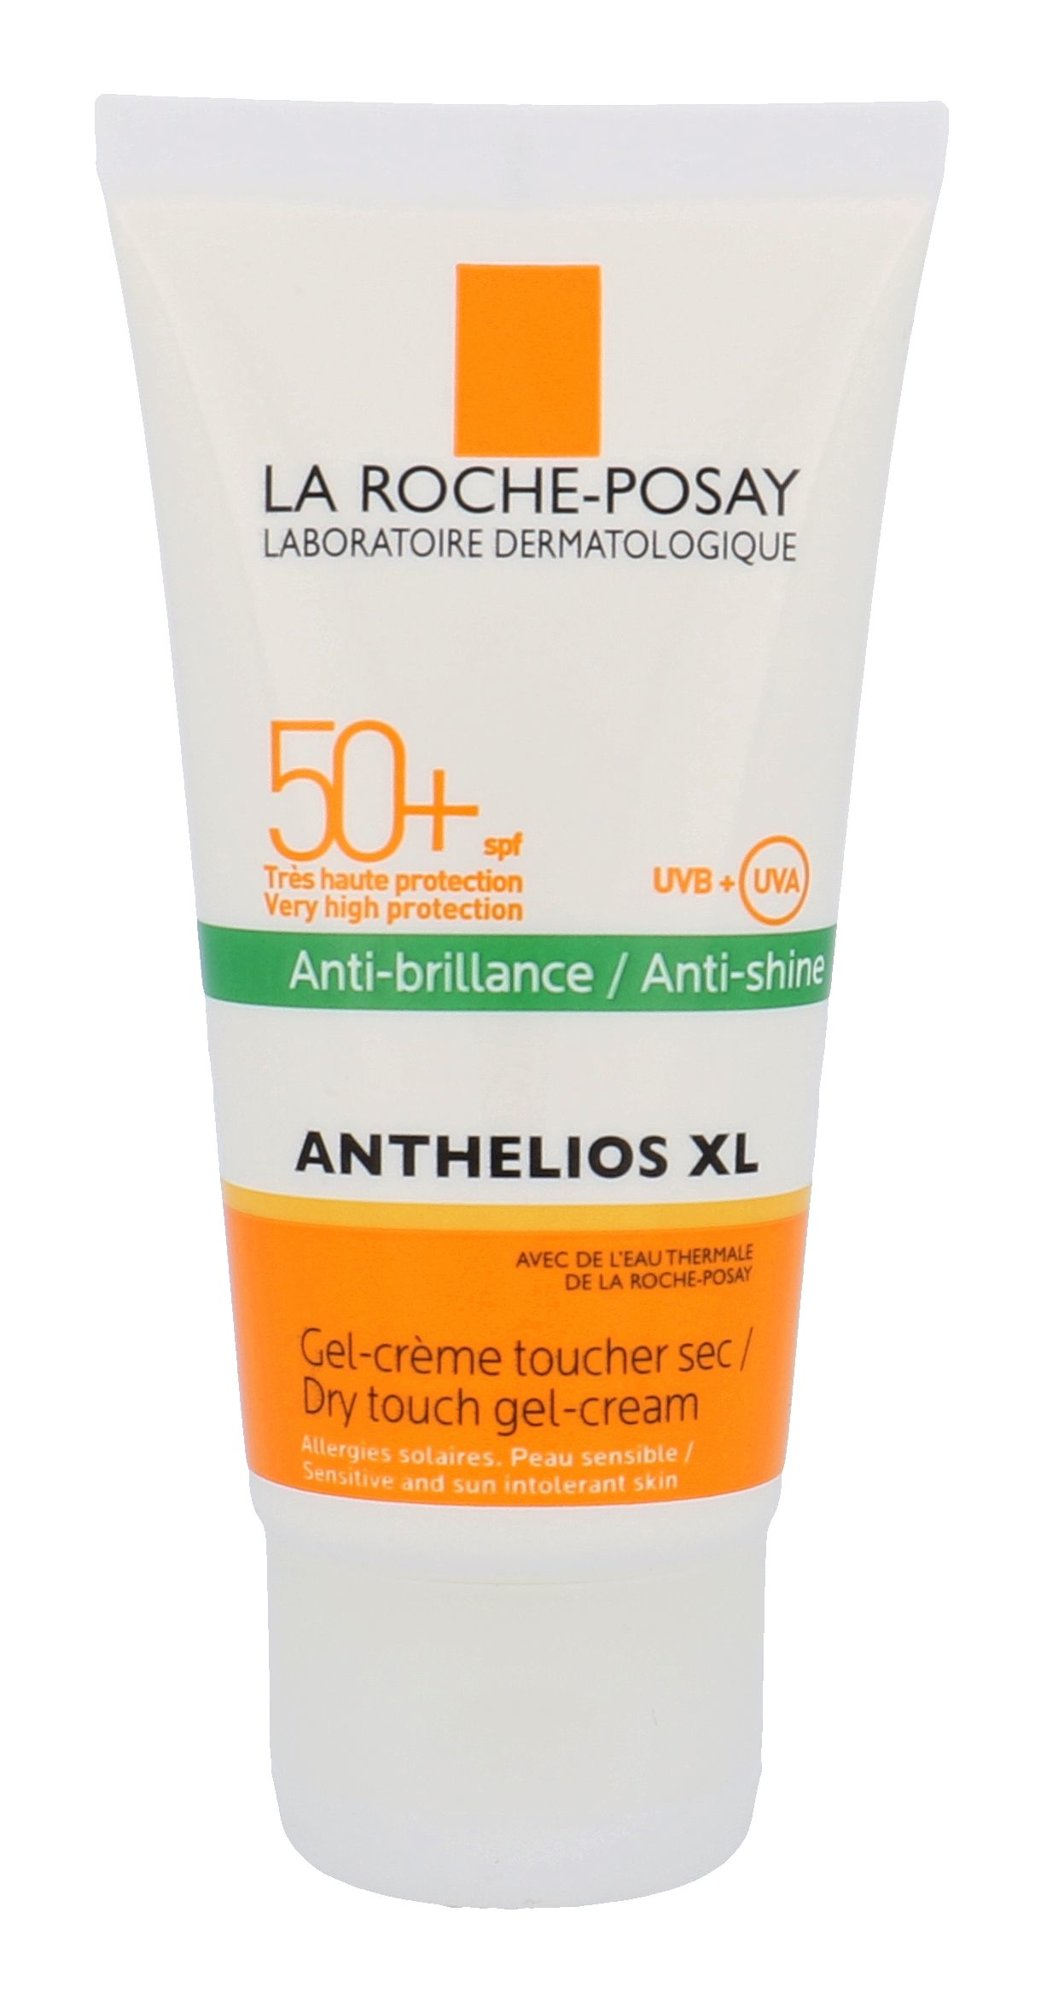 La Roche-Posay Anthelios XL Anti-Shine Dry Touch Gel-Cream SPF50 Cosmetic 50ml